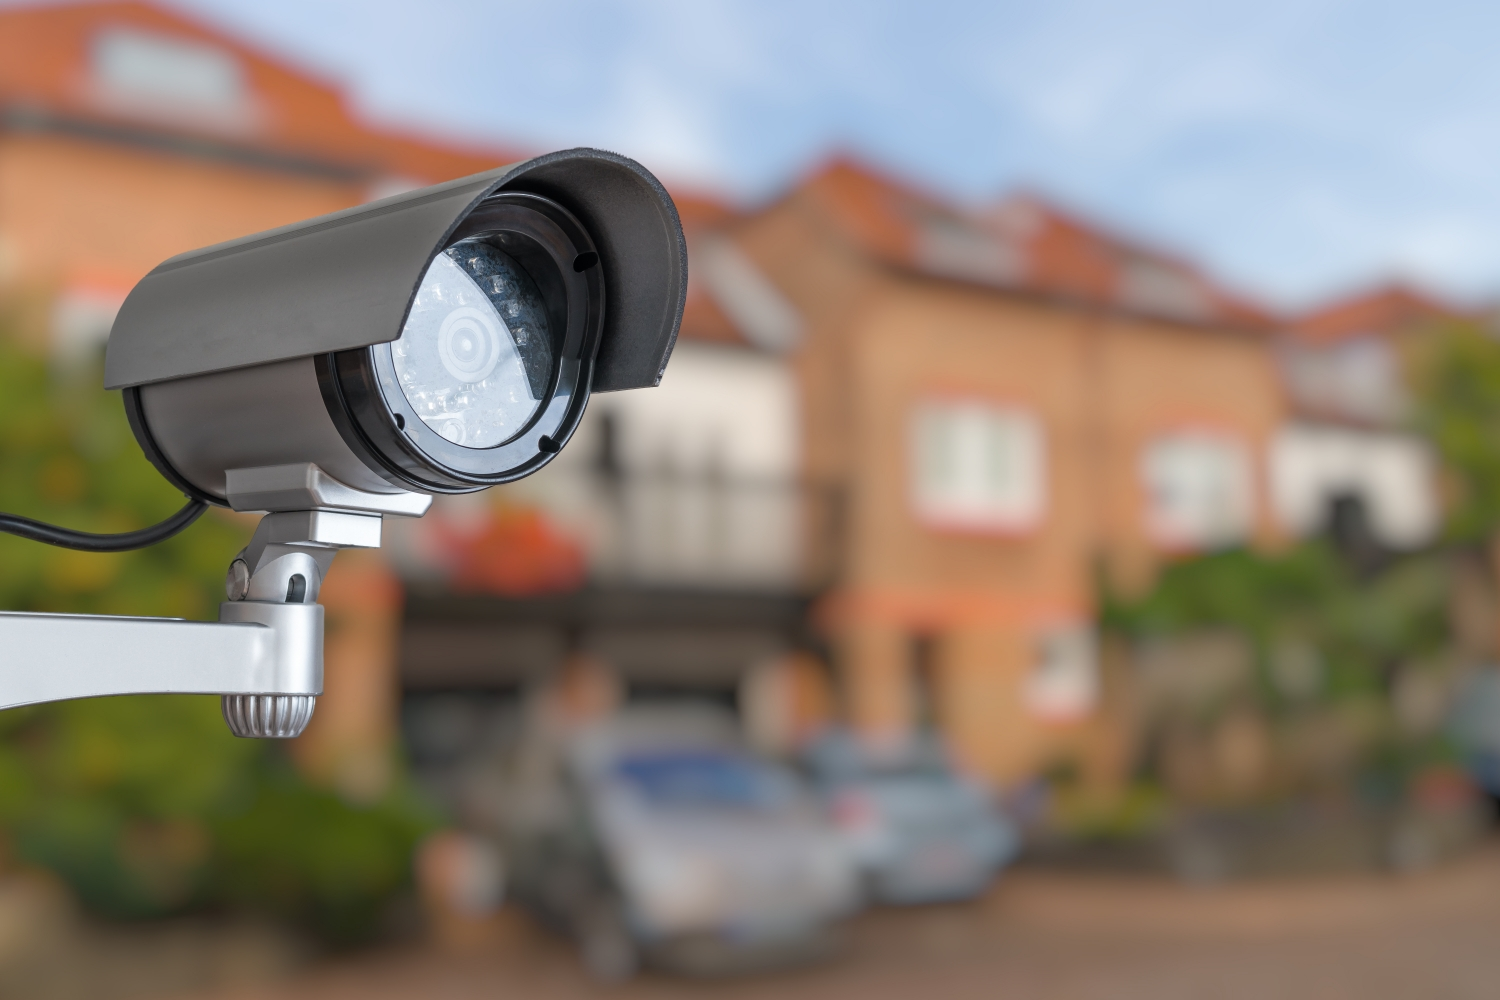 Security Systems for Multi-Family Housing